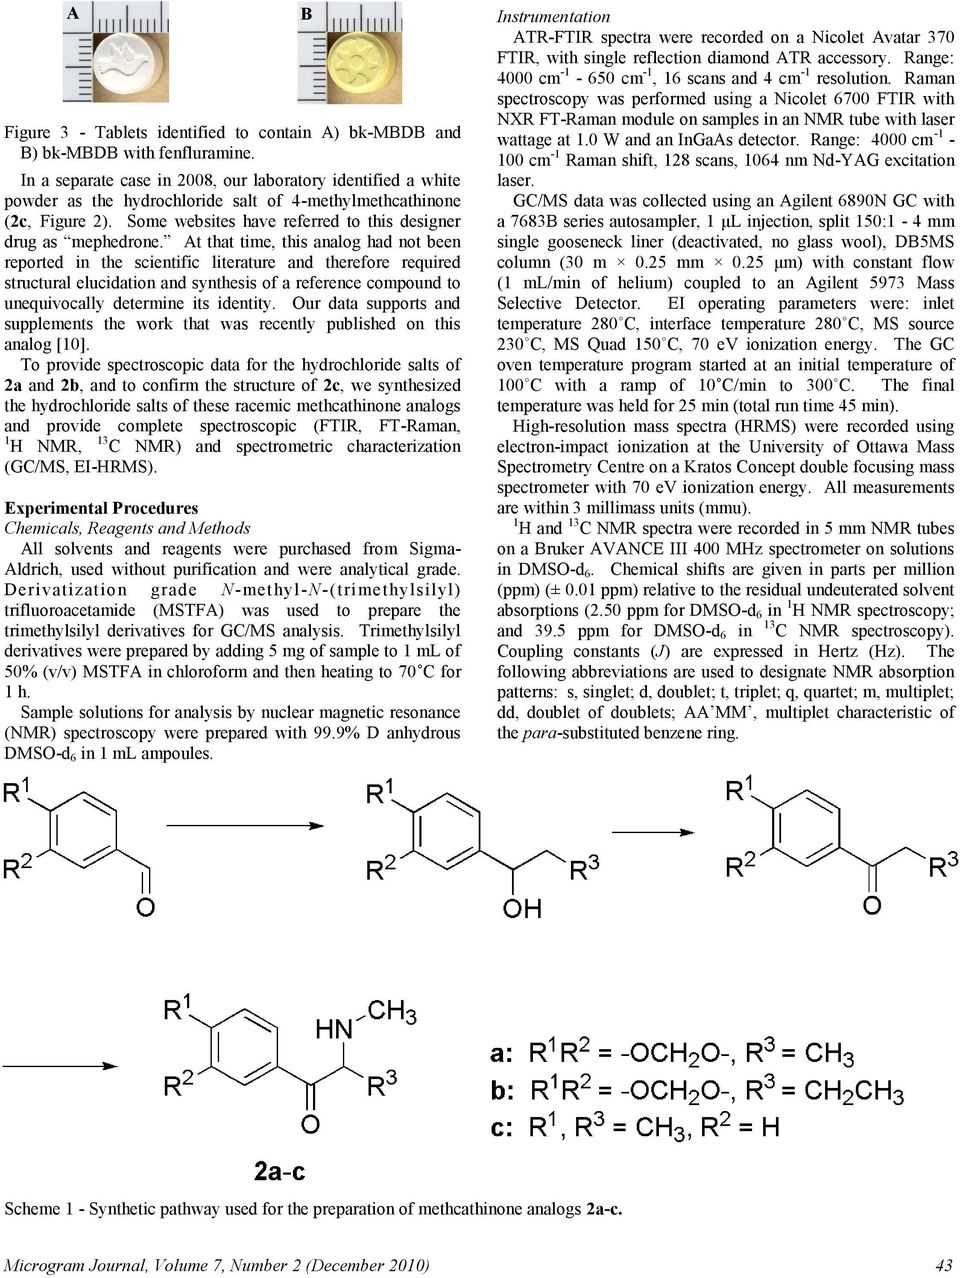 At that time, this analog had not been reported in the scientific literature and therefore required structural elucidation and synthesis of a reference compound to unequivocally determine its